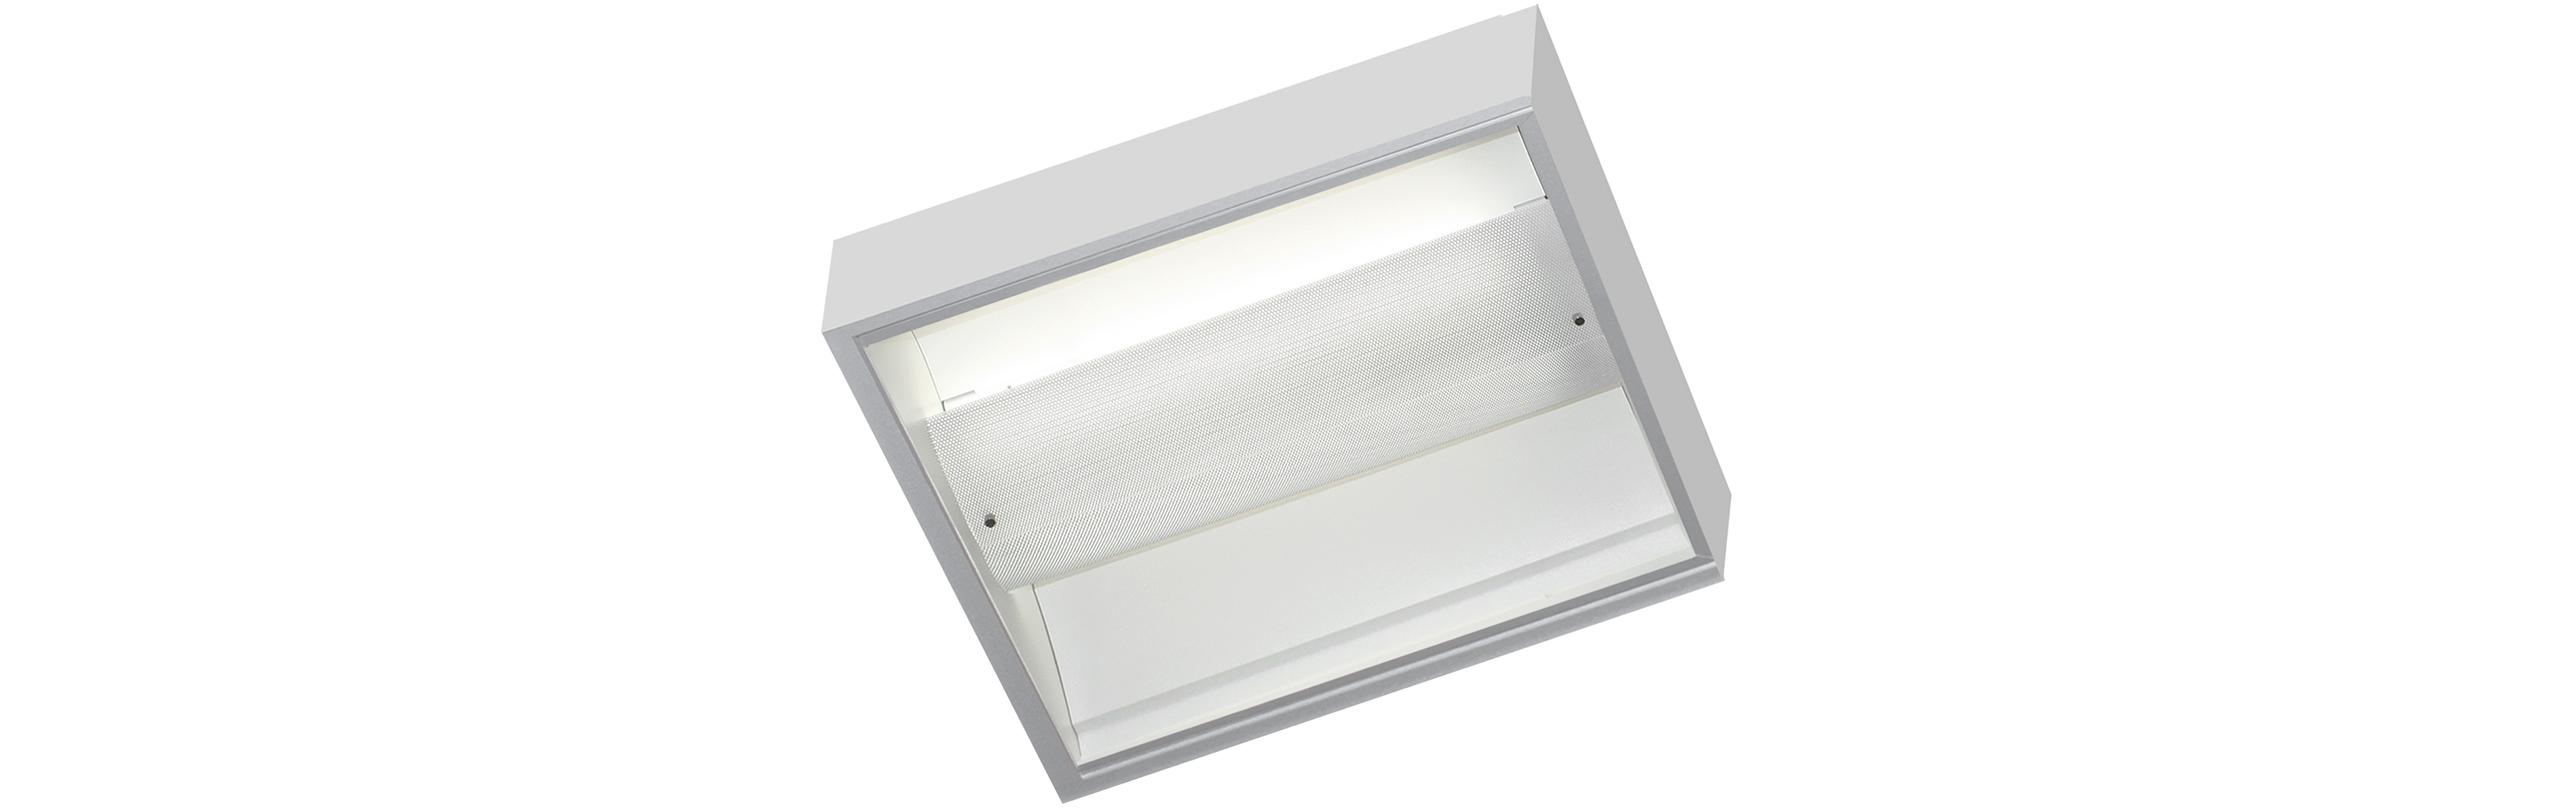 2x2 Ambient LED Light